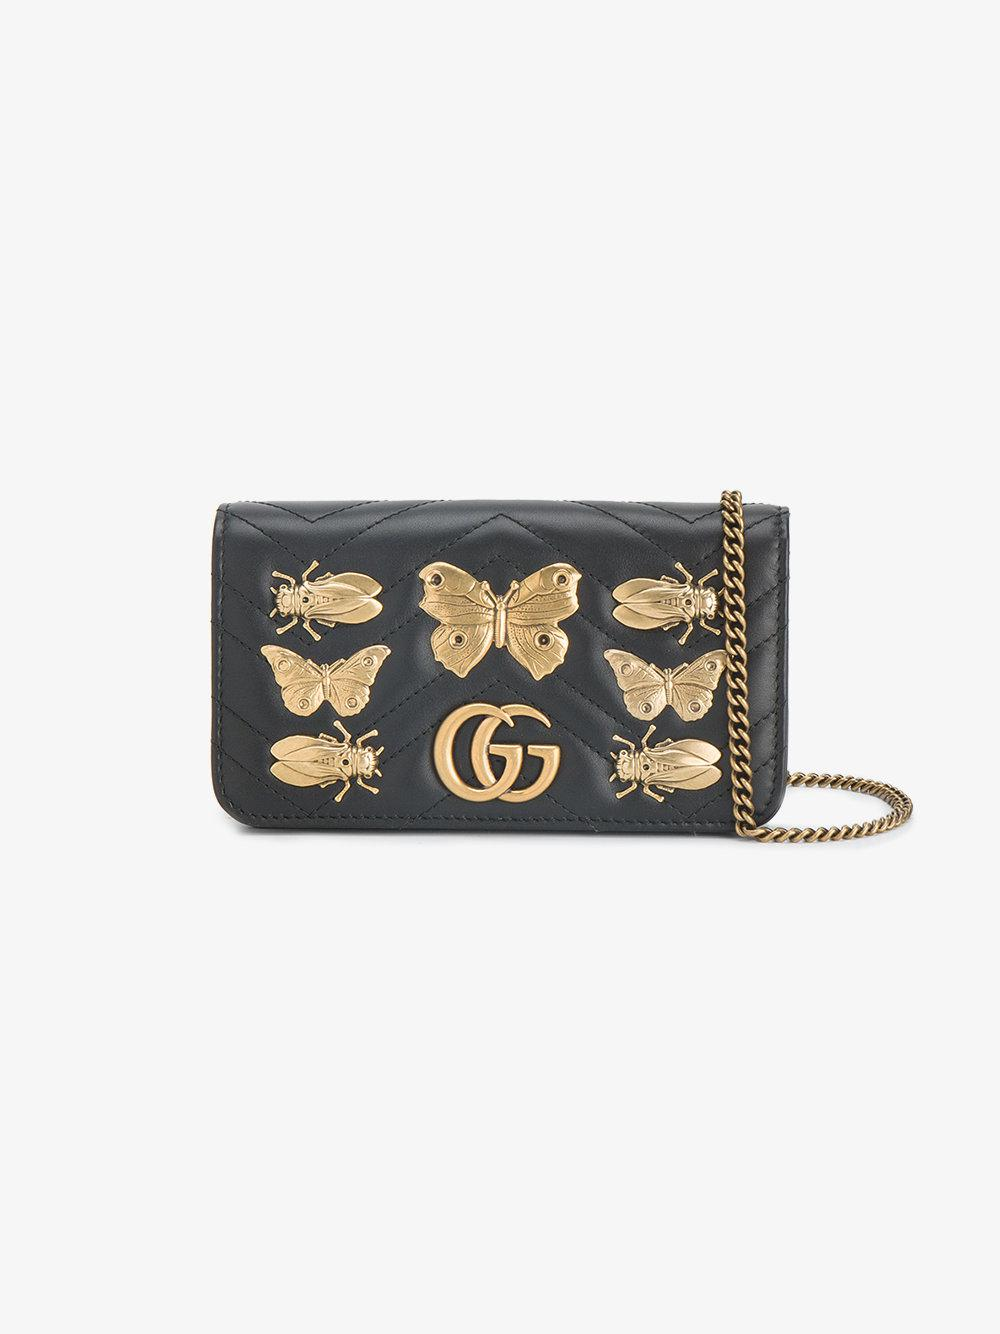 1831249dc871 Lyst - Gucci Gg Marmont Animal Studs Mini Bag in Black